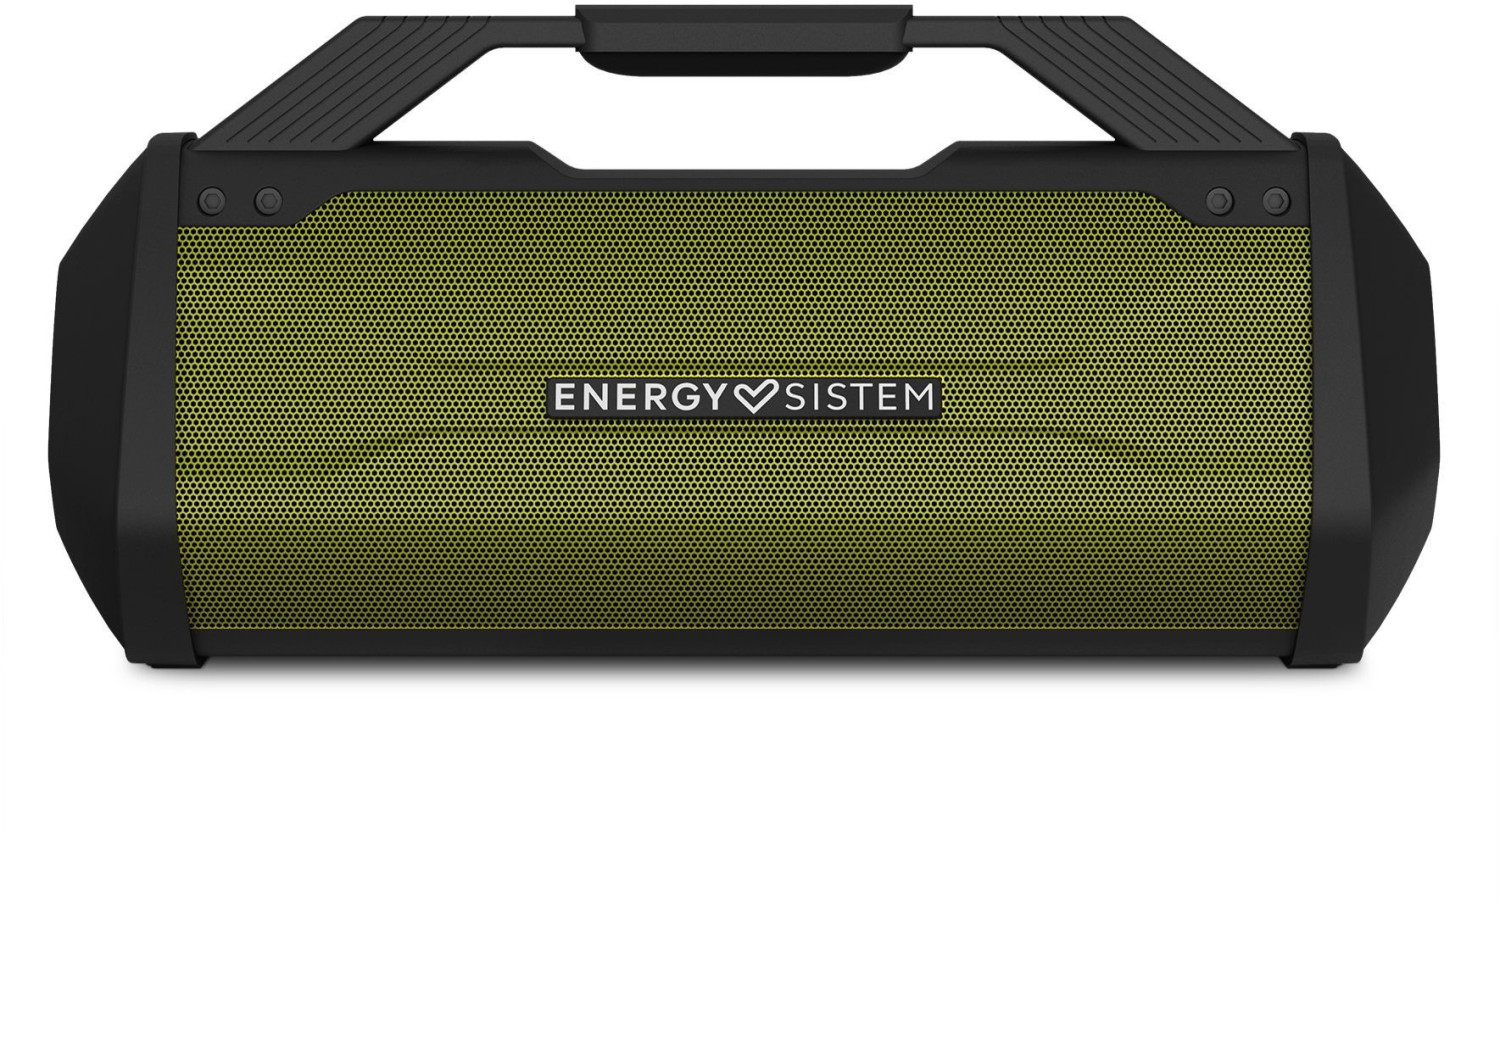 Image of Energy Sistem Box Beast